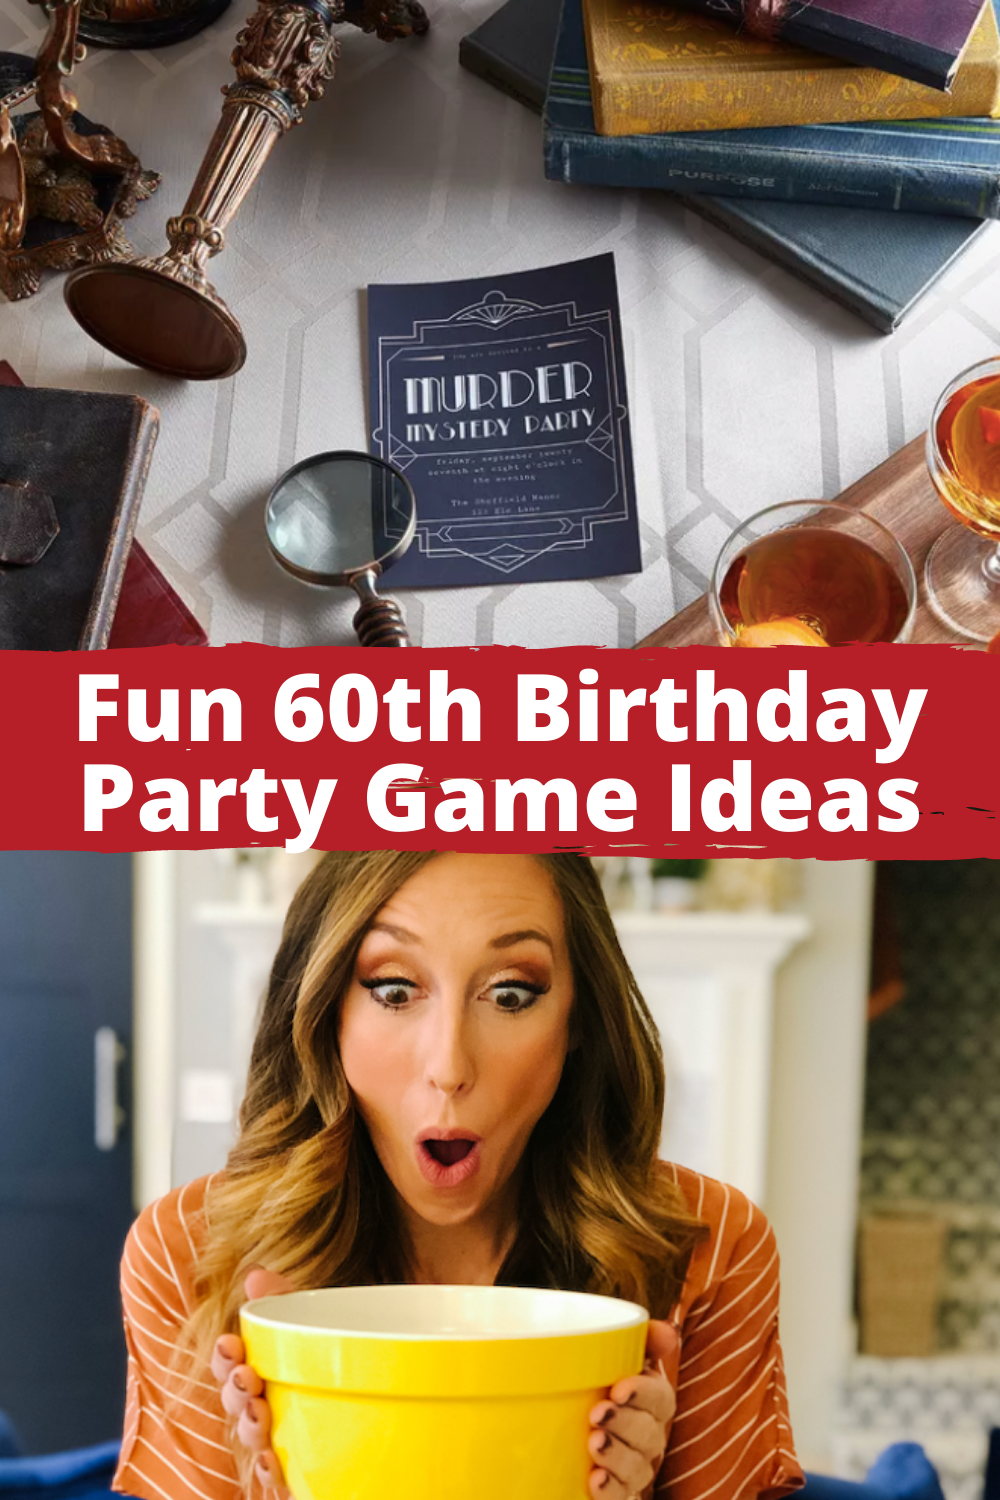 Fun 60th Birthday Party Games